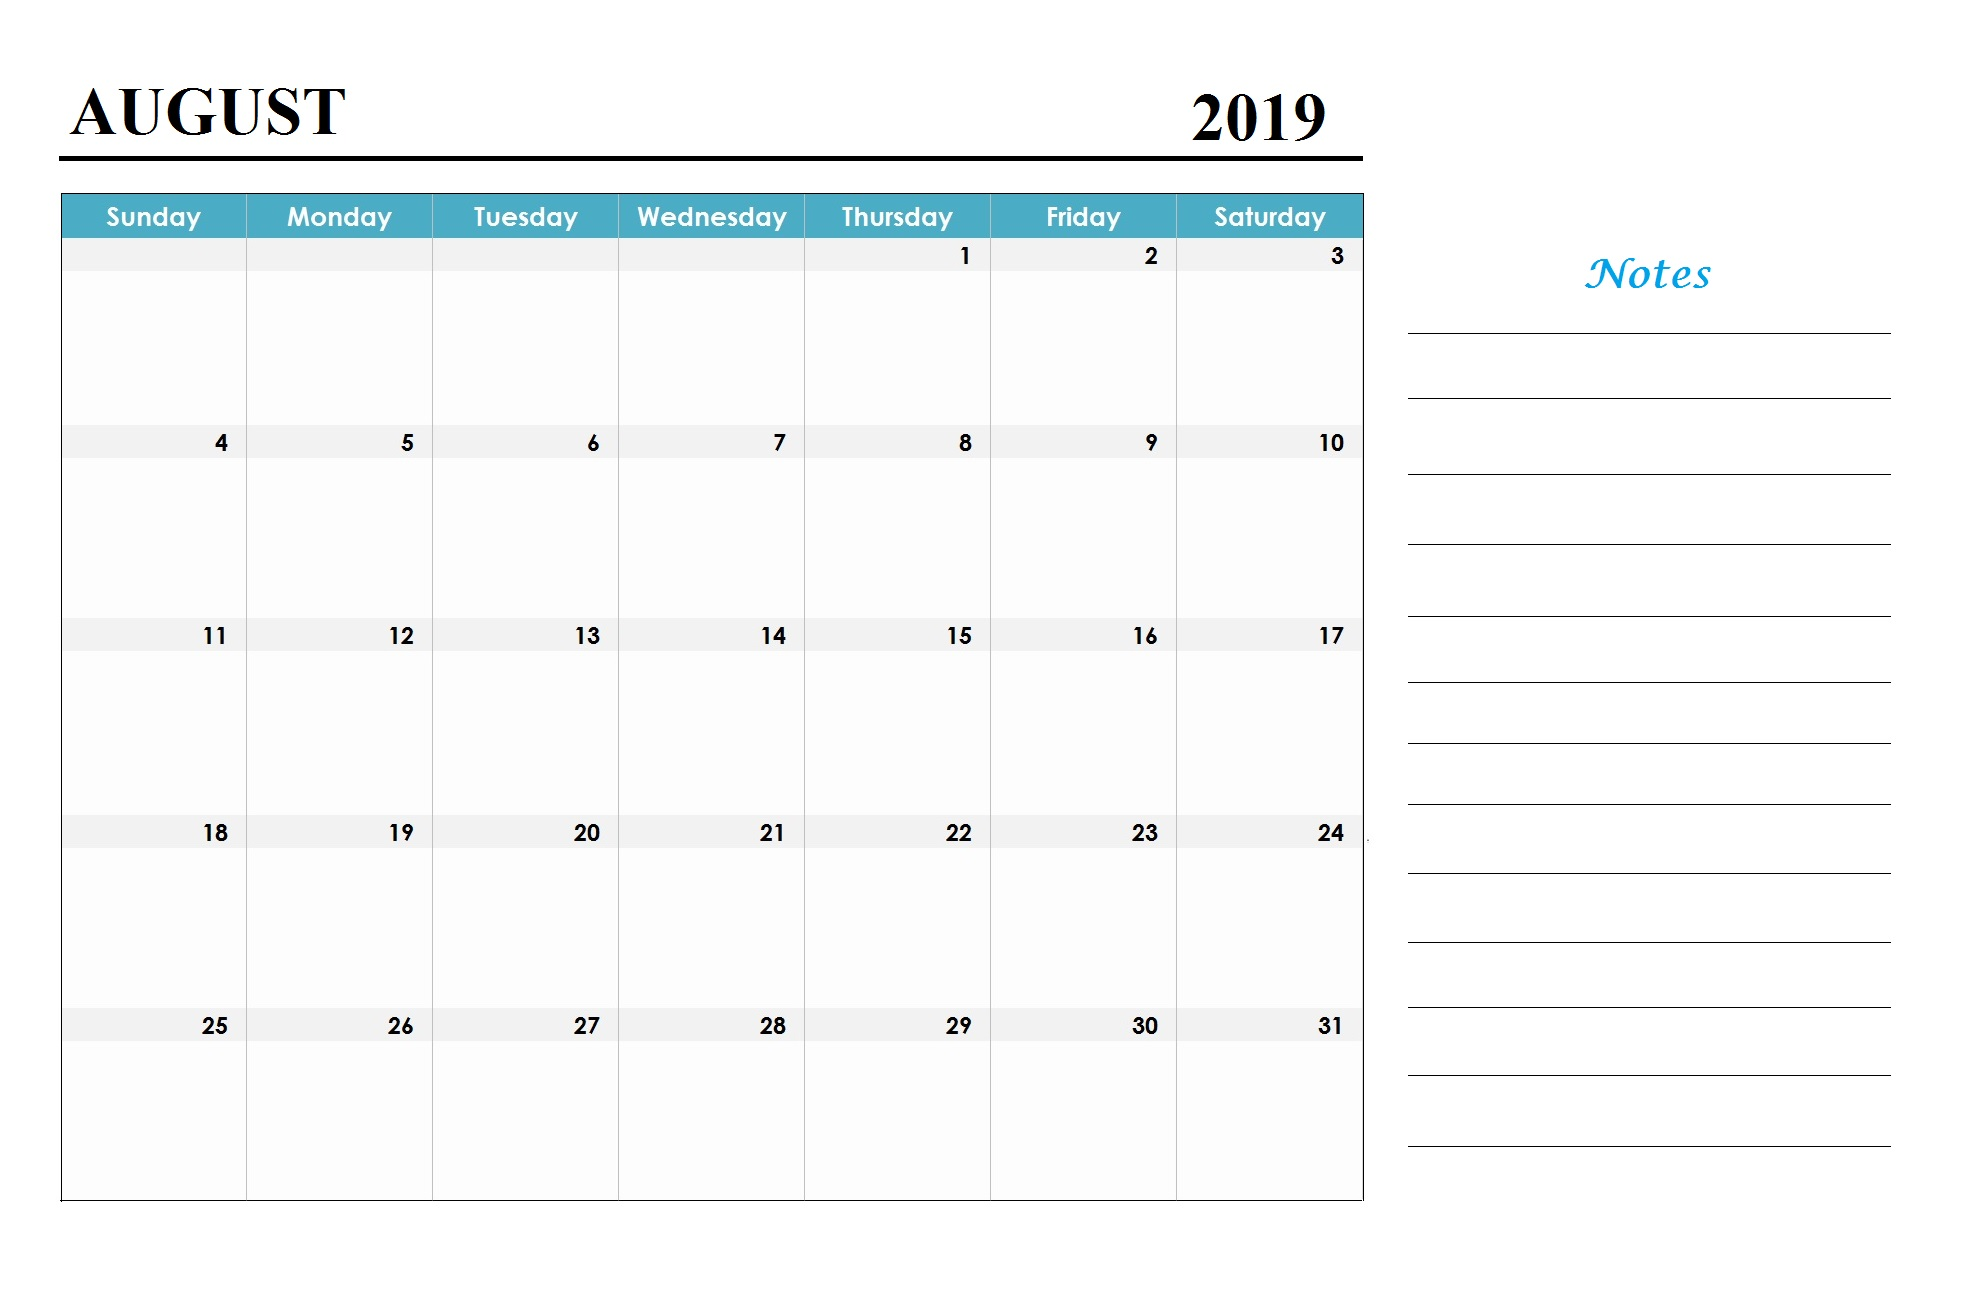 August 2019 Holidays Calendar Template